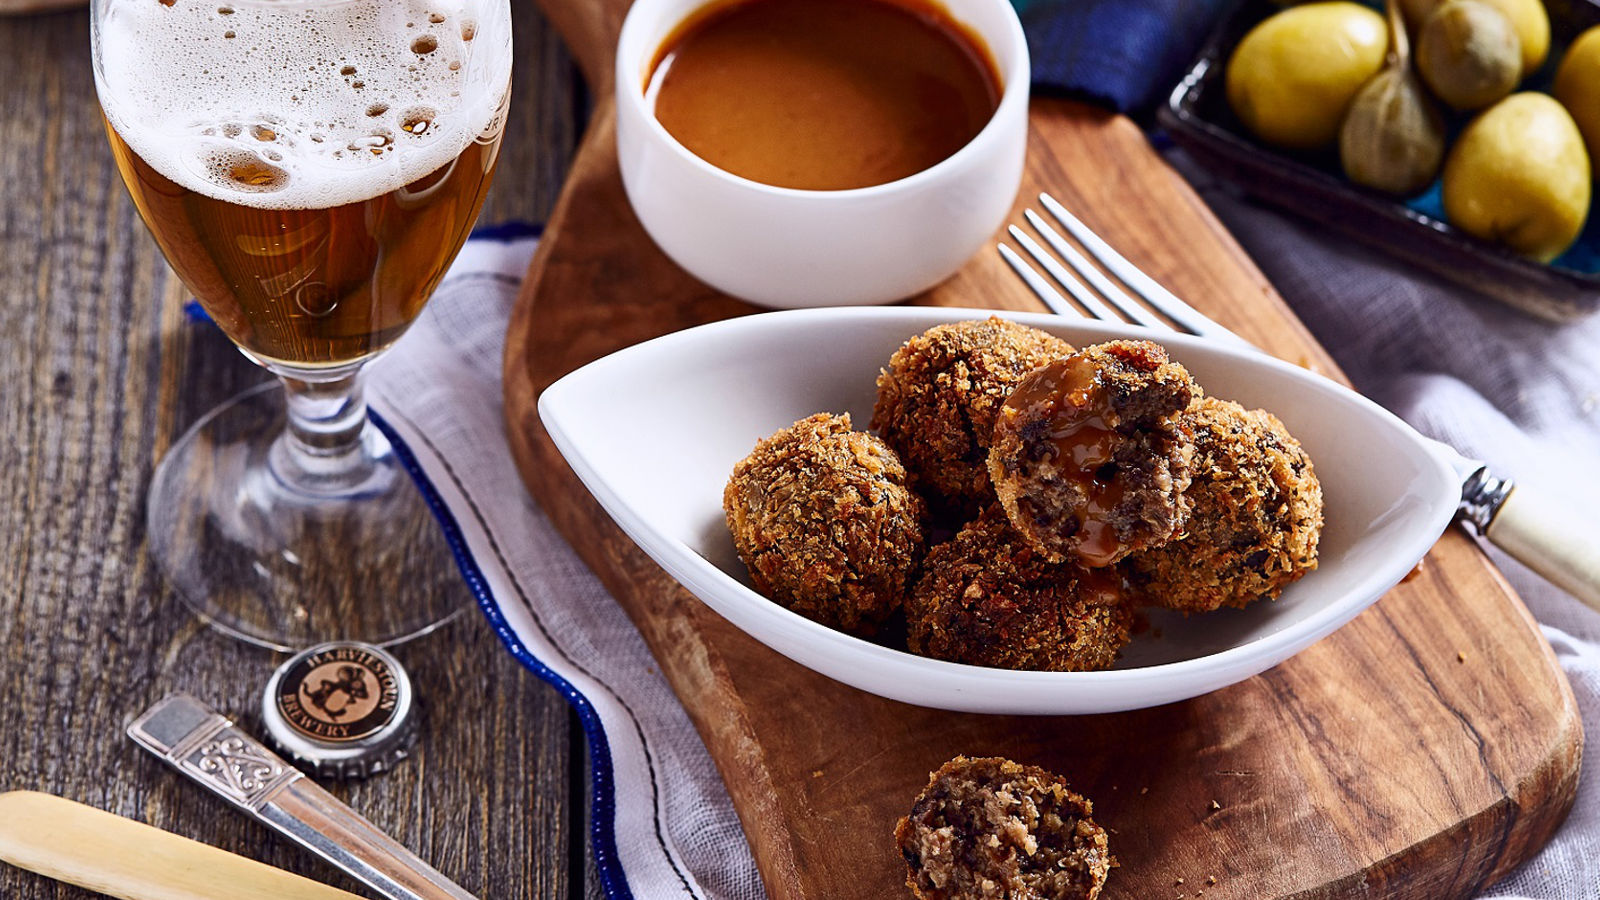 Haggis bon bons with a Talisker Whisky Brose